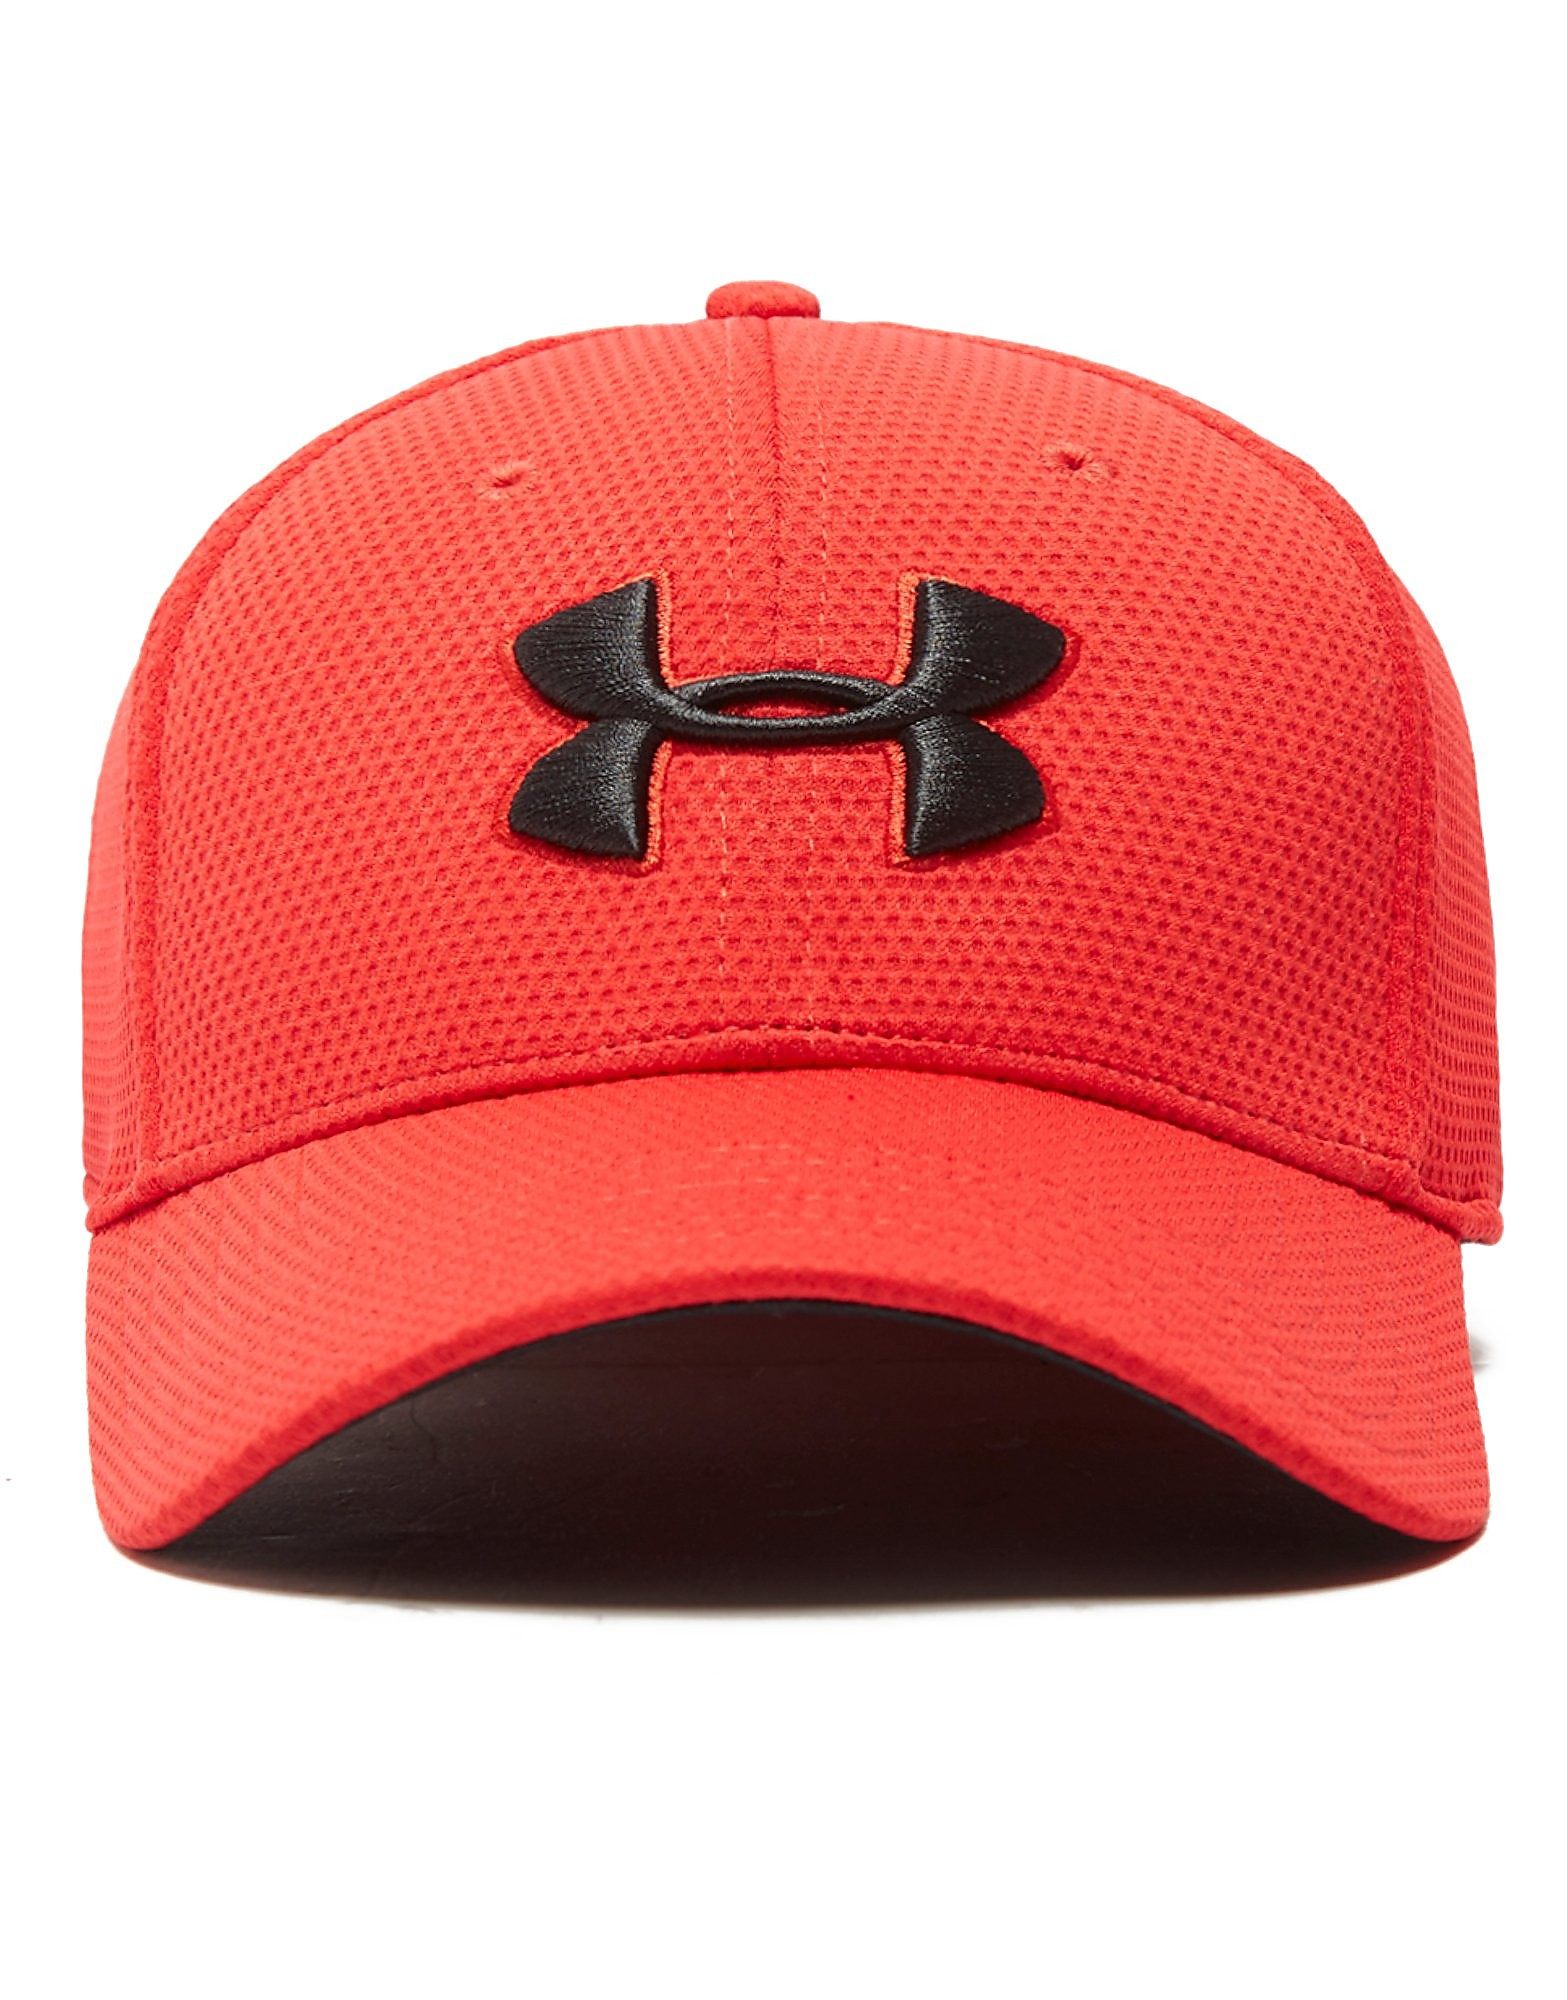 Under Armour Blitzing 2 Cap